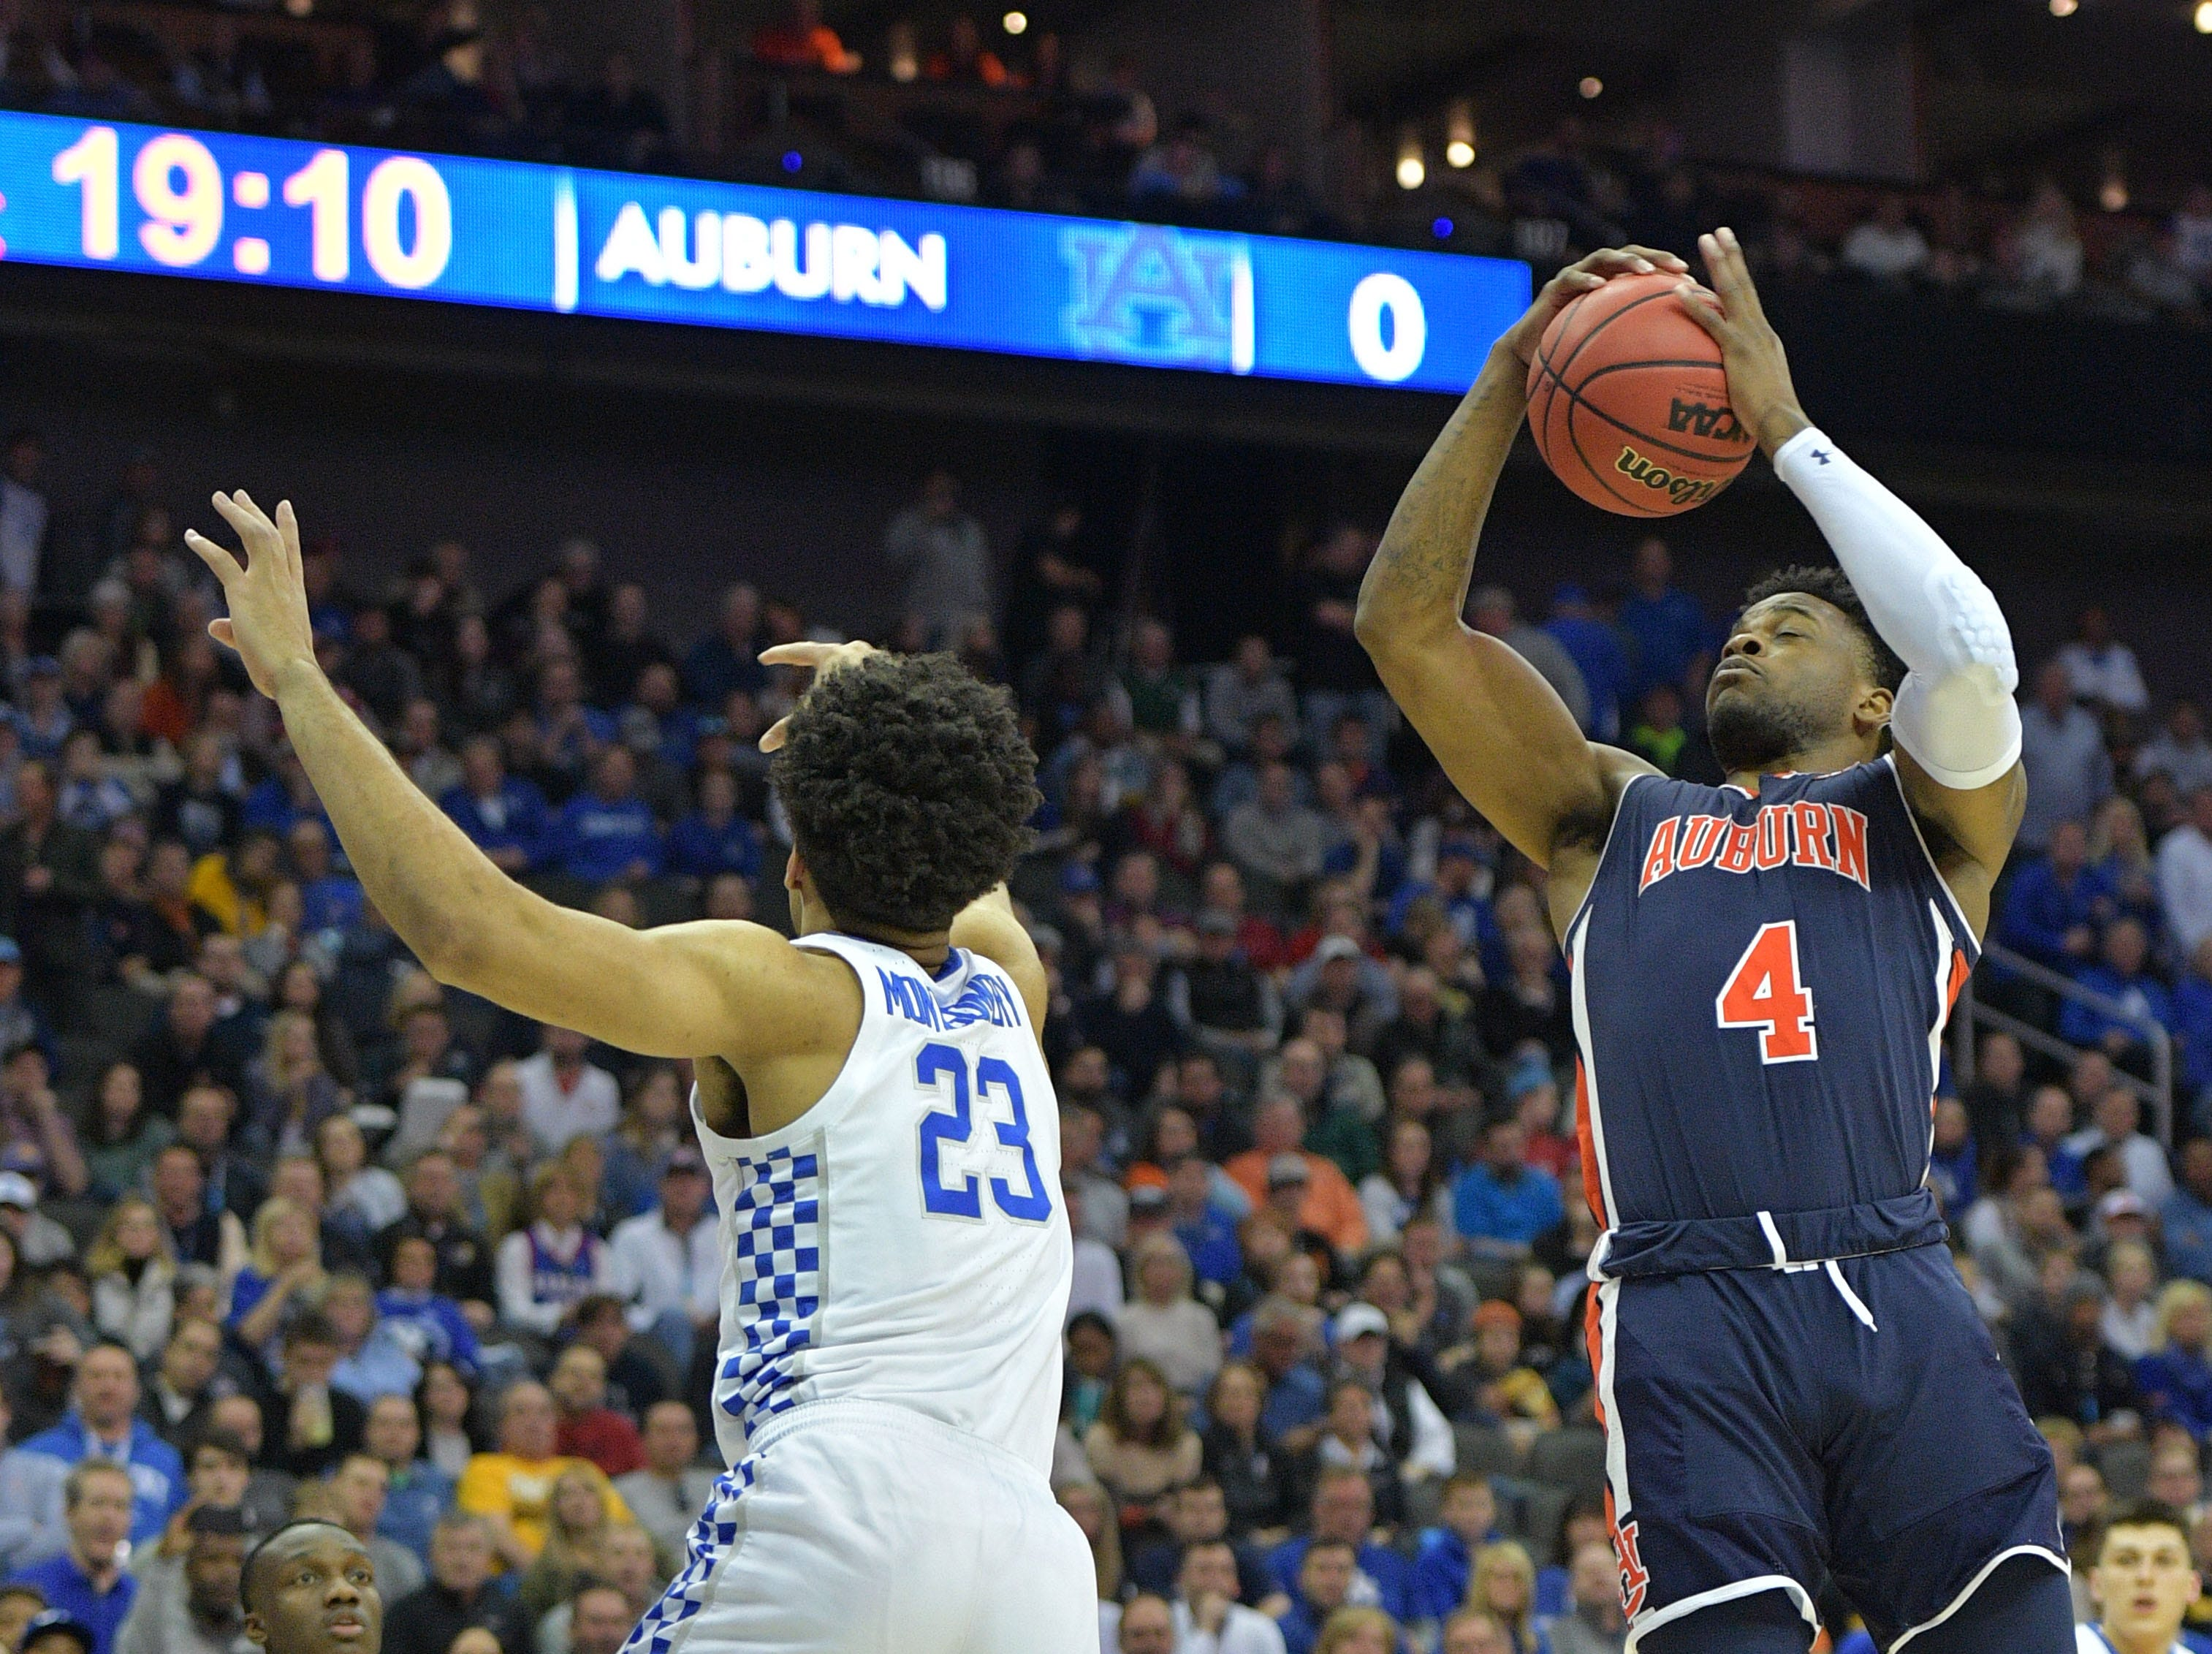 Mar 31, 2019; Kansas City, MO, United States; Auburn Tigers guard Malik Dunbar (4) rebounds over Kentucky Wildcats forward EJ Montgomery (23) during the first half in the championship game of the midwest regional of the 2019 NCAA Tournament at Sprint Center. Mandatory Credit: Denny Medley-USA TODAY Sports